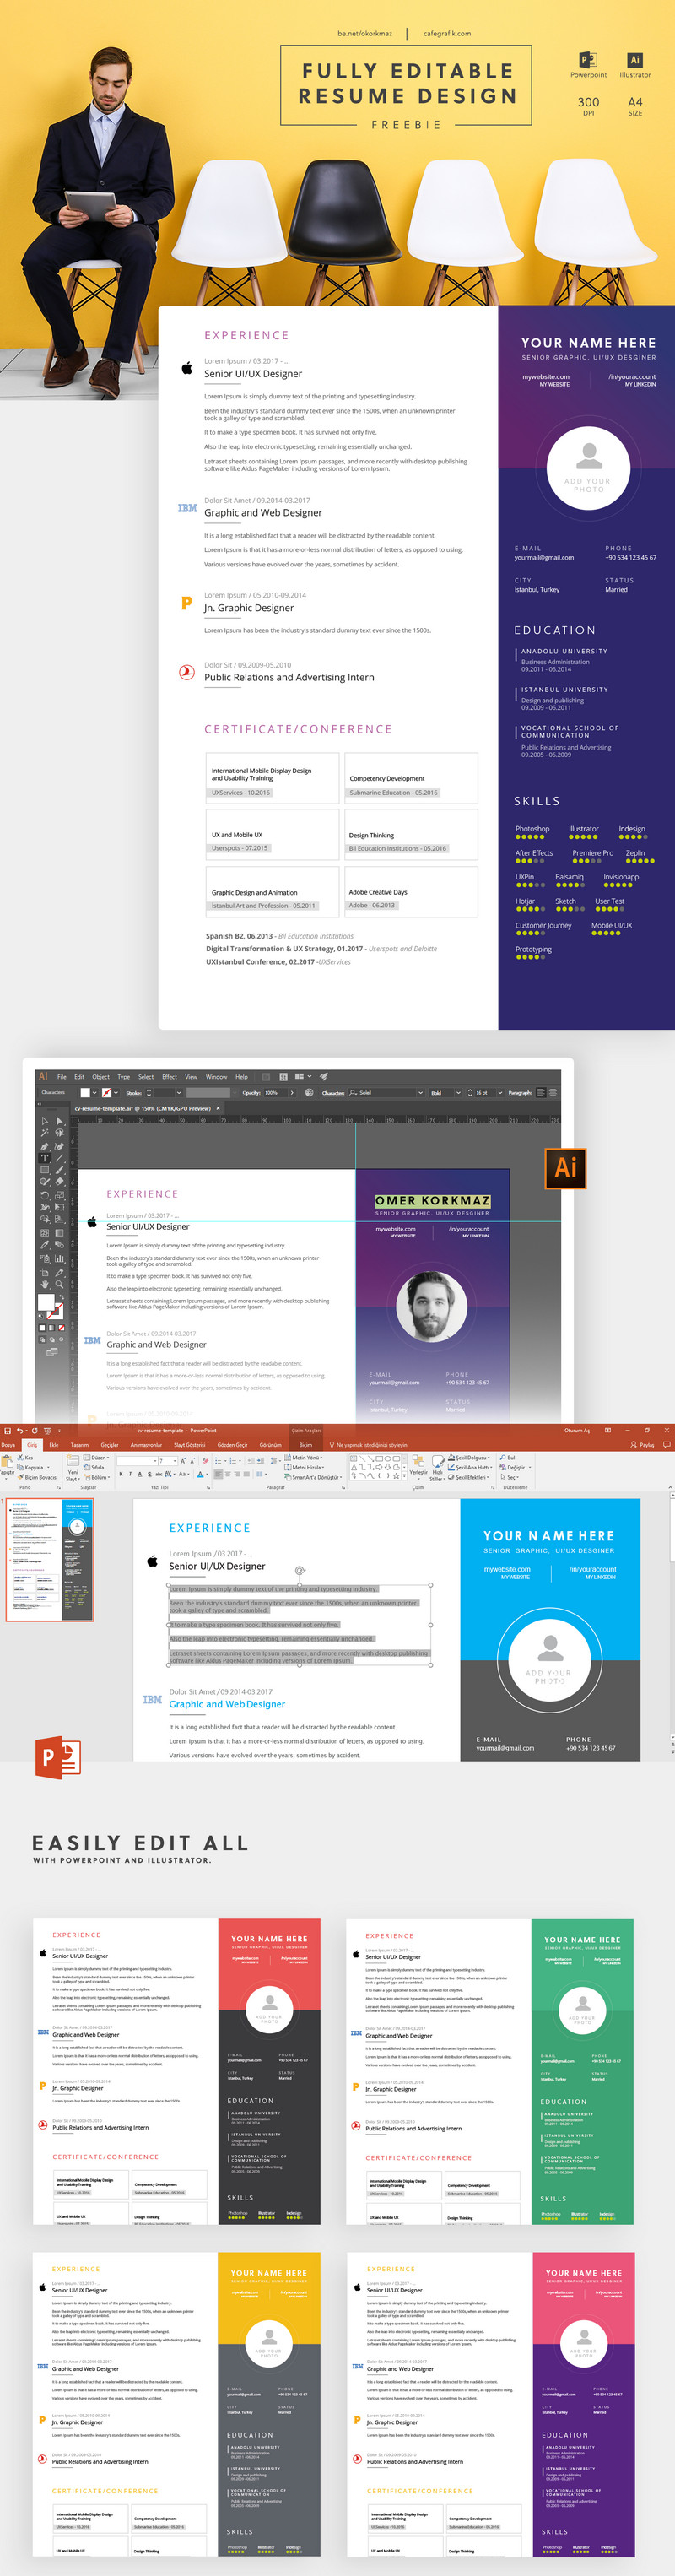 creative resume template, illustrator and powerpoint - bypeople, Modern powerpoint